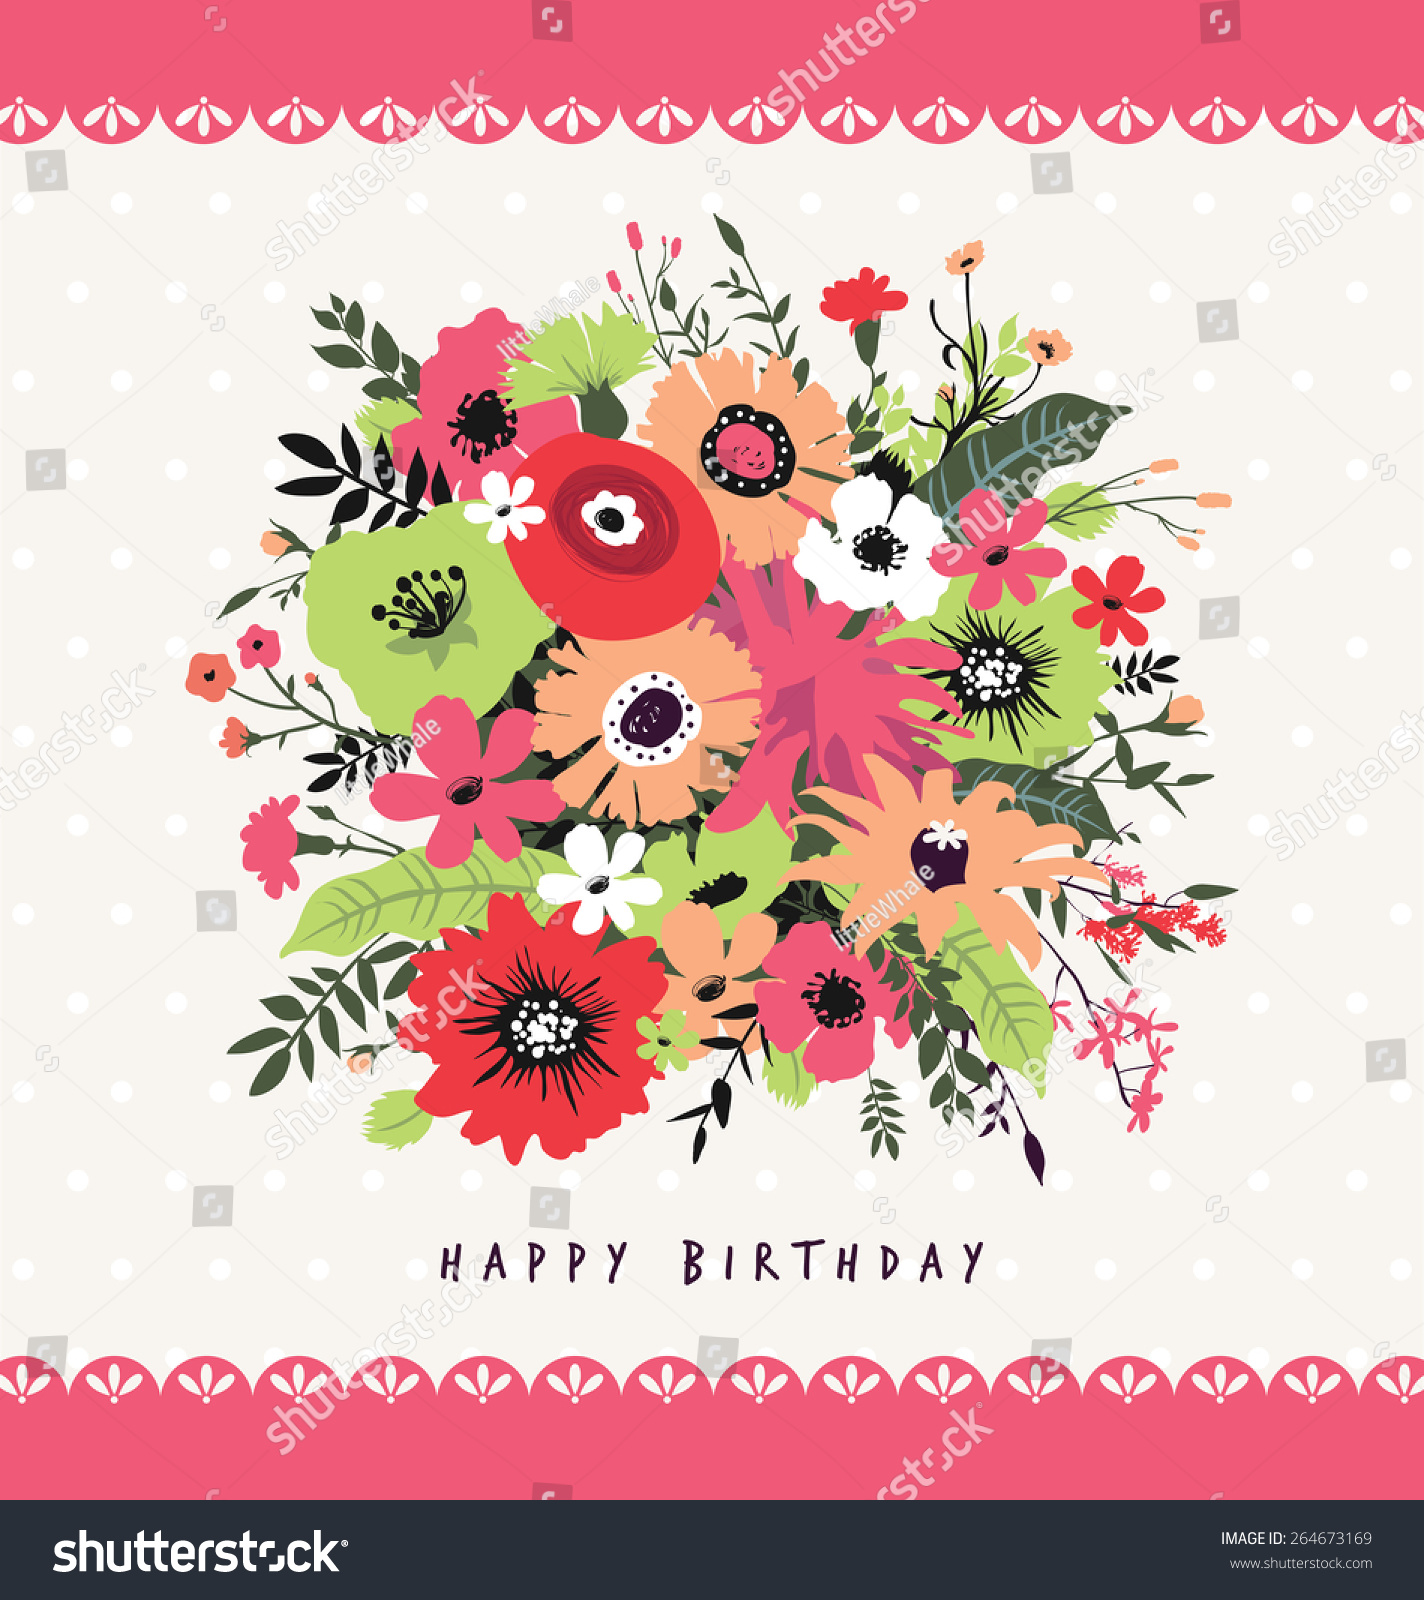 Happy birthday greeting card beautiful bunch stock vector 264673169 happy birthday greeting card with a beautiful bunch of flowers izmirmasajfo